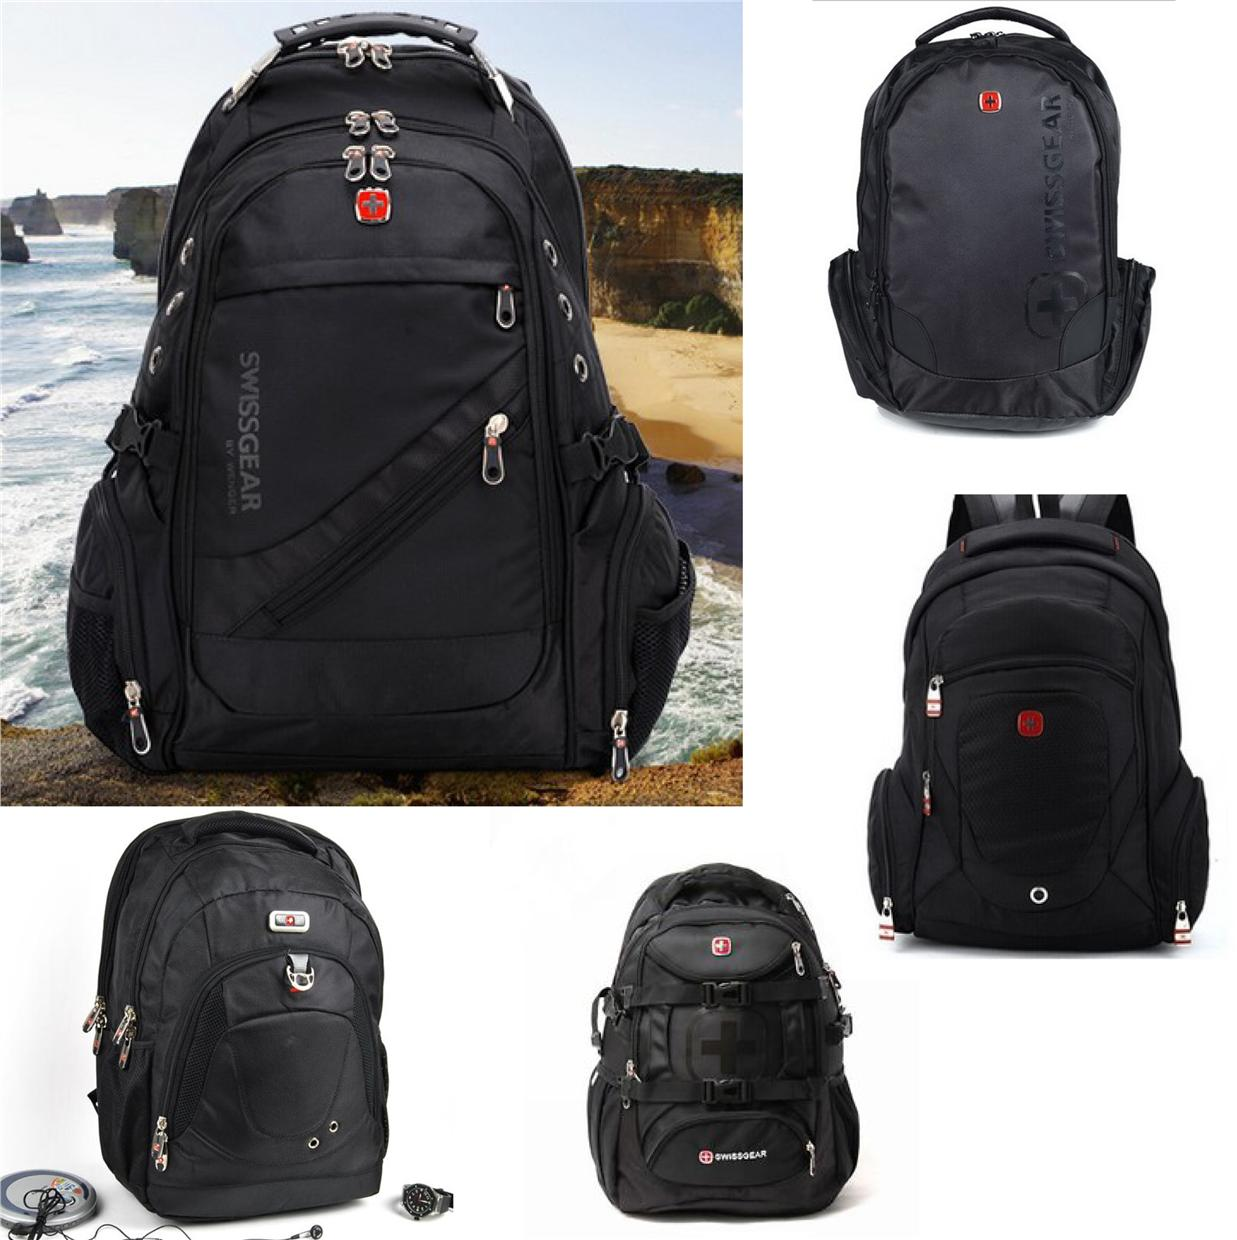 swiss gear backpack malaysia Backpack Tools